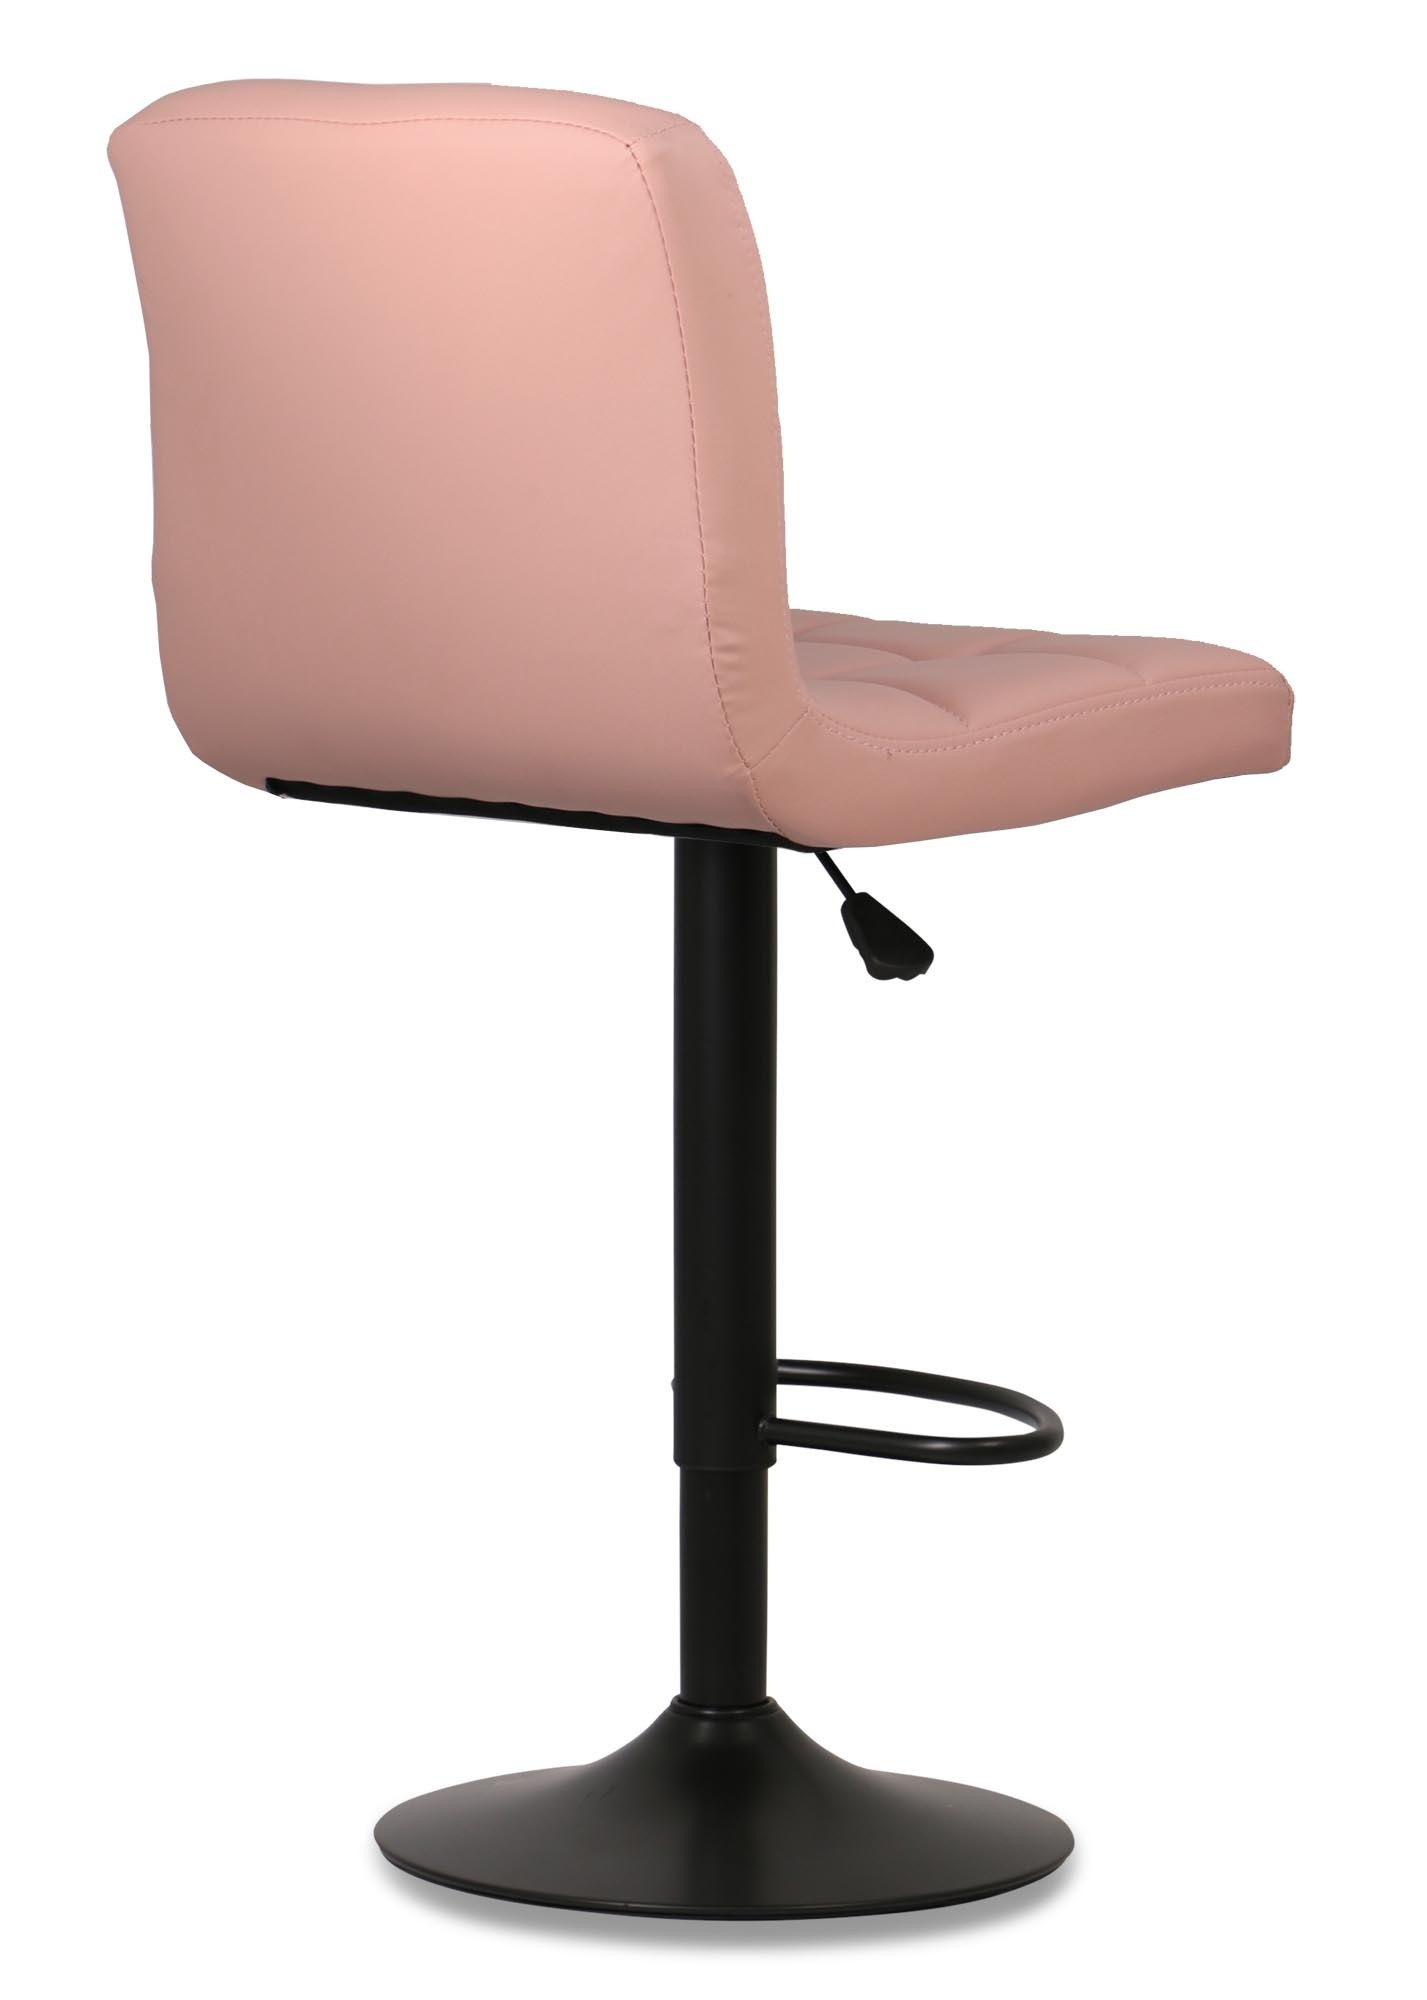 Isora Bar Stool With Black Base Light Pink Furniture Home Décor Fortytwo